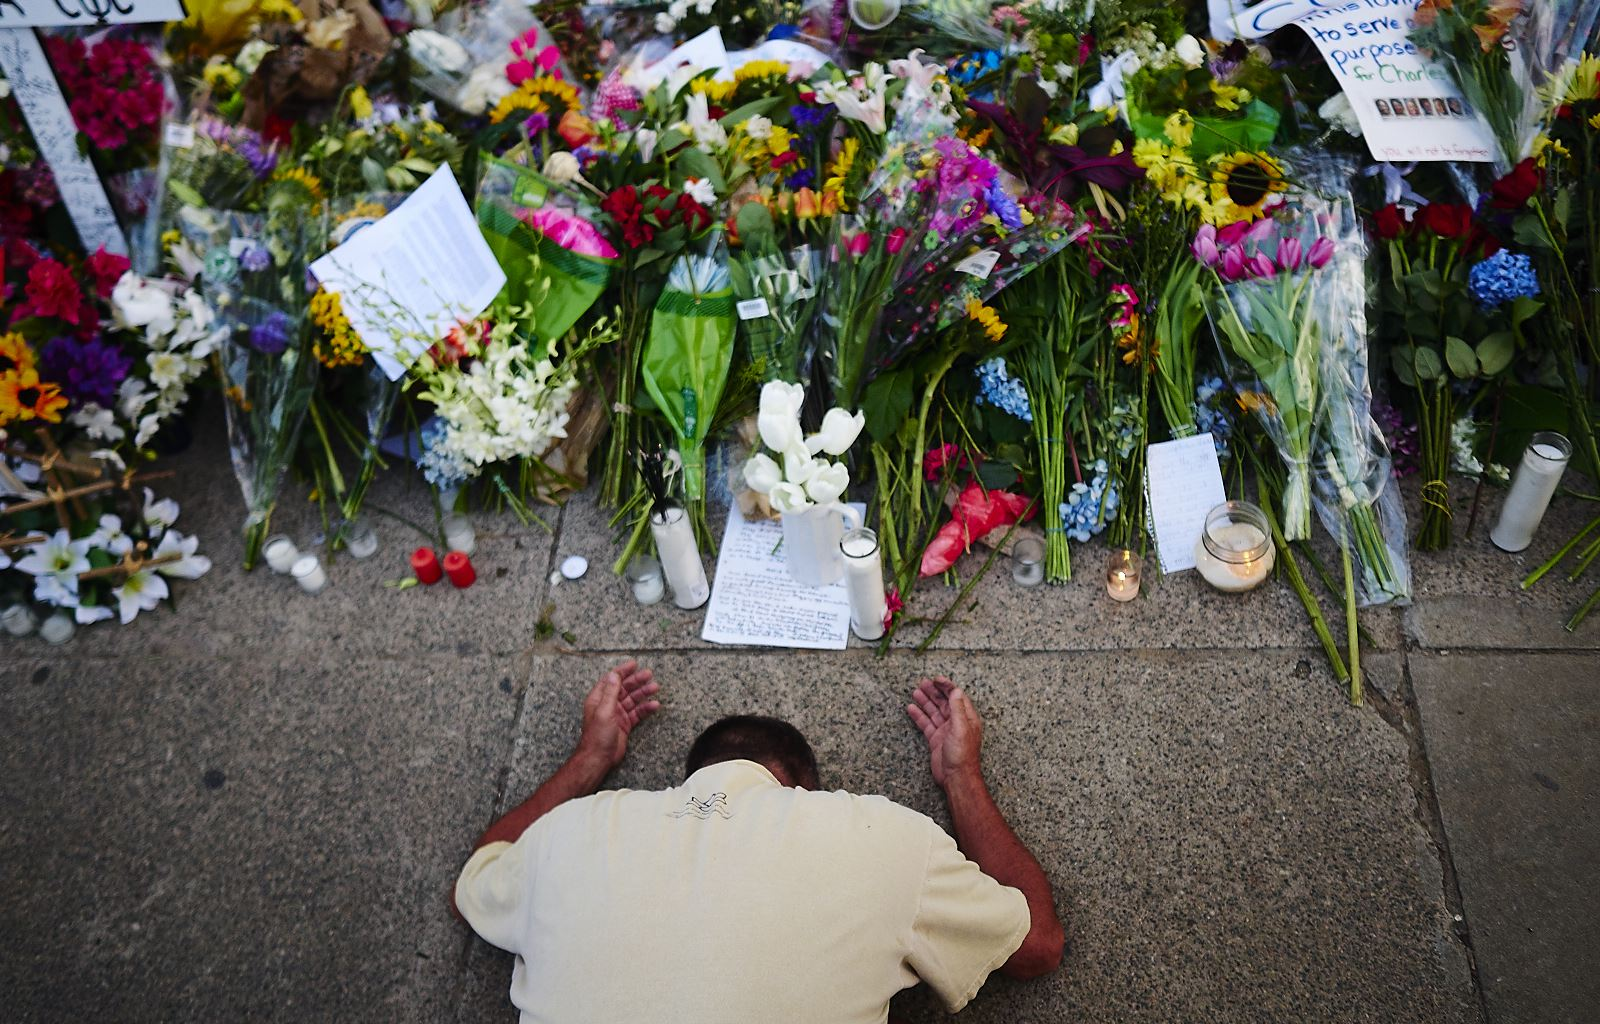 Raymond Smith, of Erie, PA, prays before the start of Sunday prayer services at the Mother Emanuel AME Church on Sunday, June 21, 2015 in Charleston, S.C. The church, closed since Dylann Storm Roof killed nine parishioners during a prayer meeting last week, reopened for Sunday services.